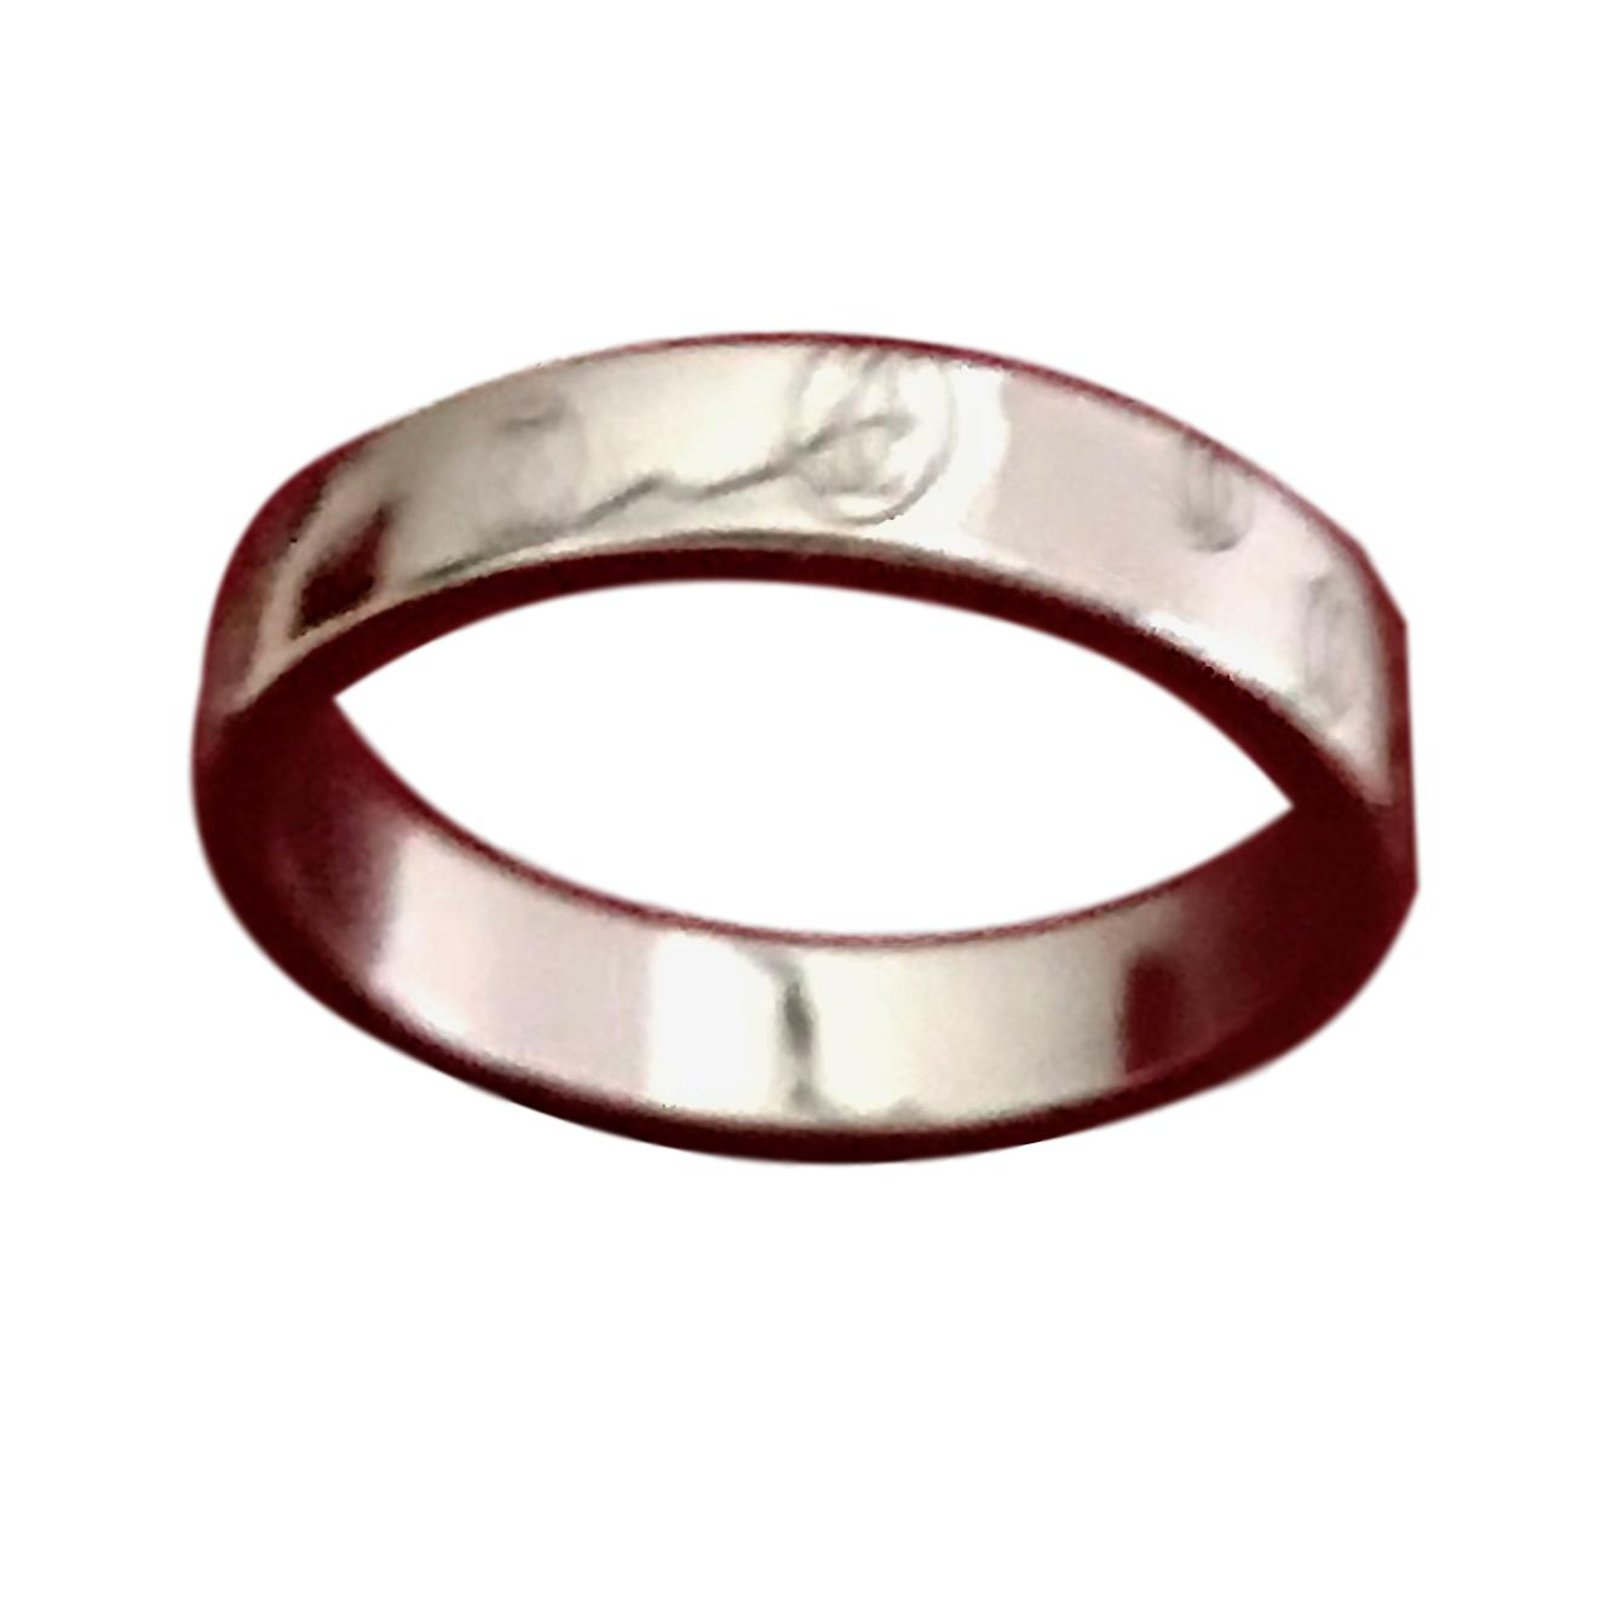 Cartier Rings Rings White gold Silvery ref 65285   Joli Closet Cartier Rings Rings White gold Silvery ref 65285